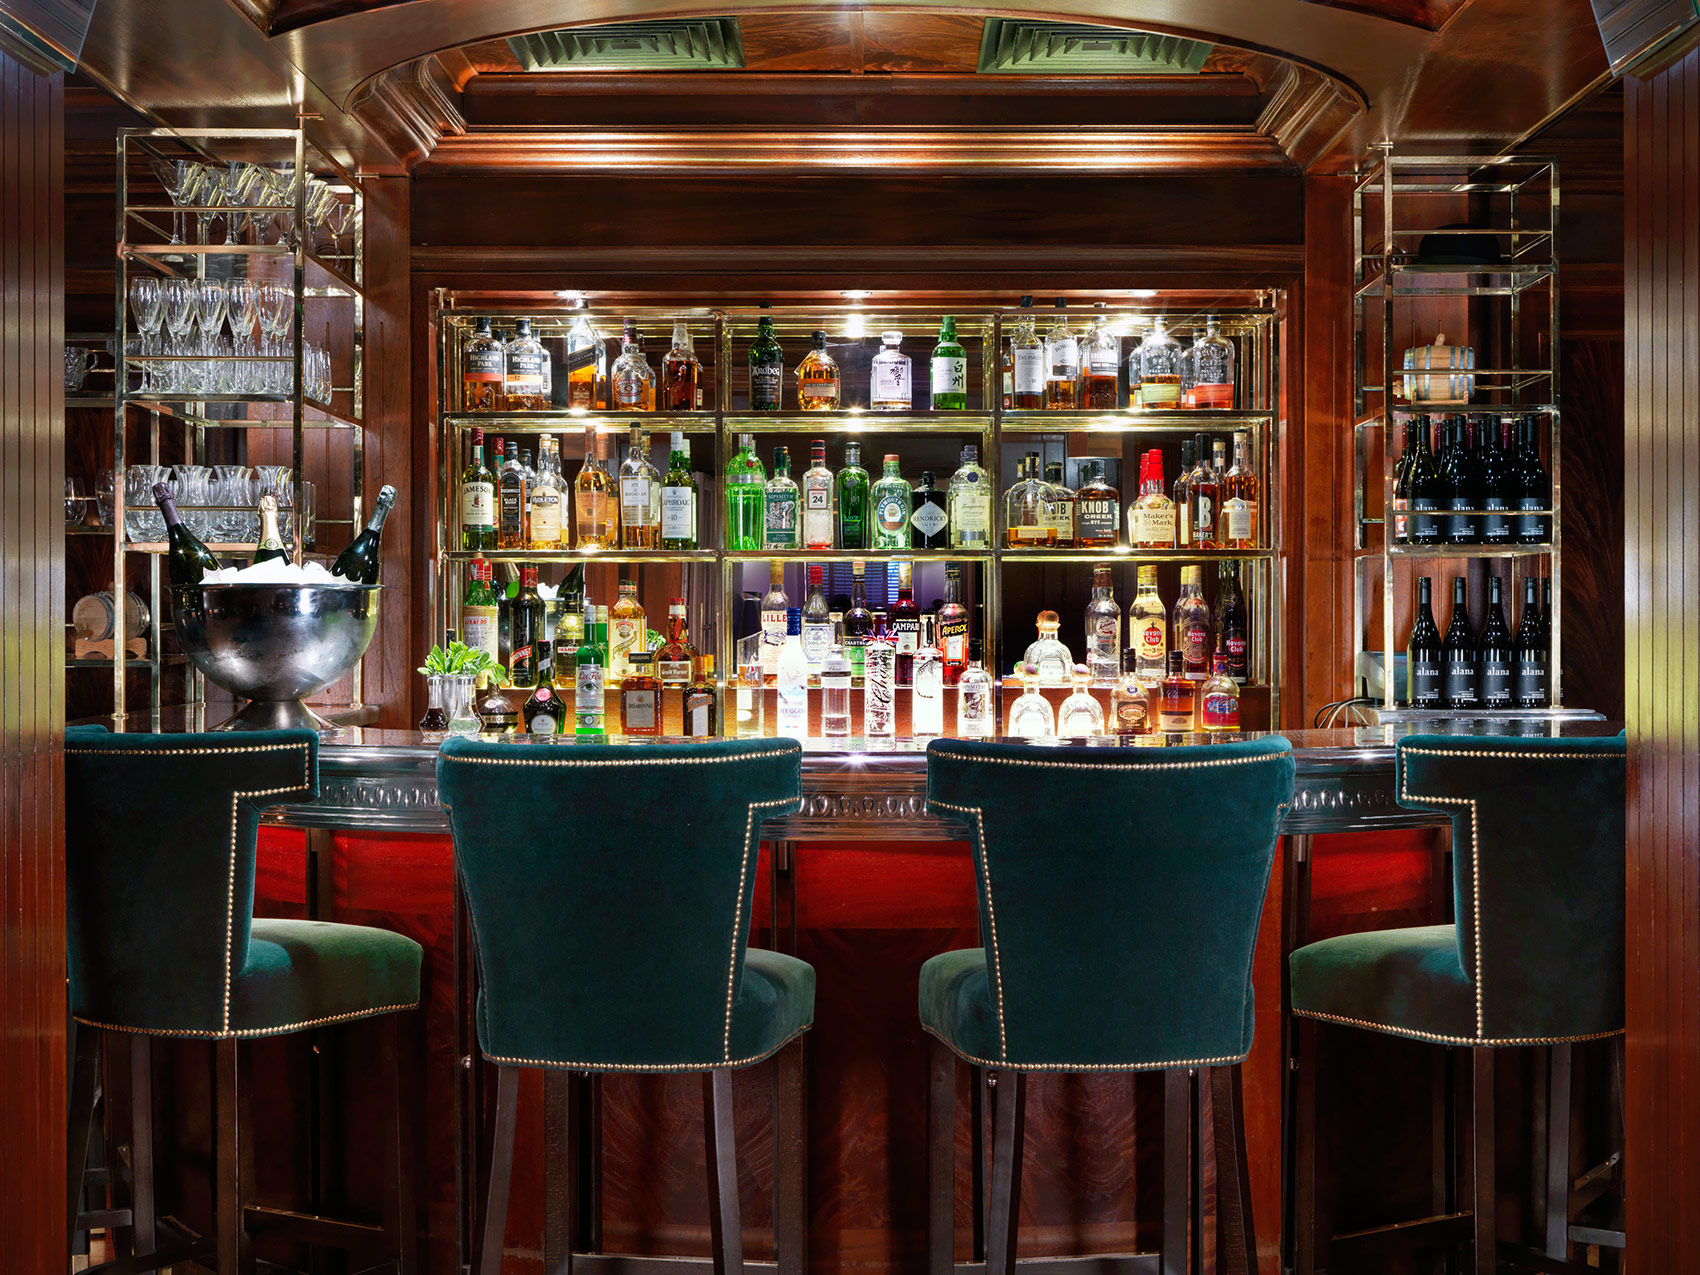 The Bloomsbury Club Bar - Home To The Golden Age Of Cocktails